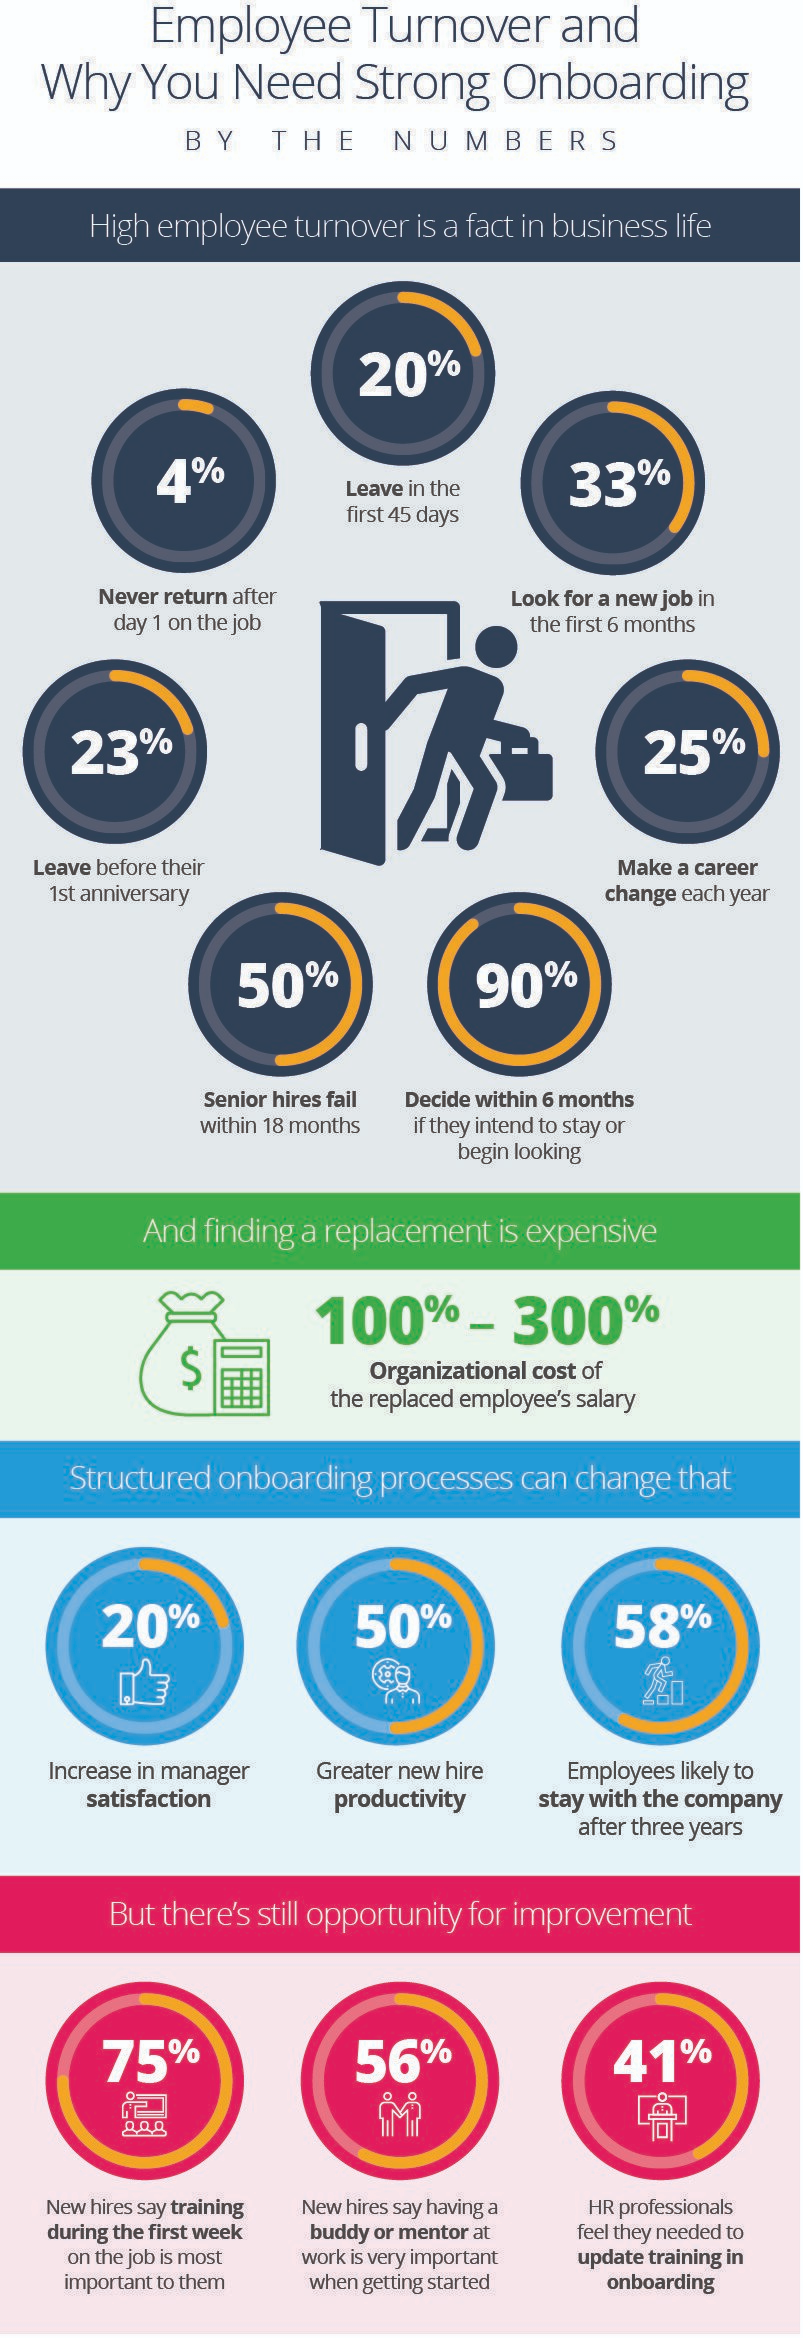 Employee Onboarding Process Tips And Tools Smartsheet In 2020 Employee Onboarding Onboarding Process Onboarding